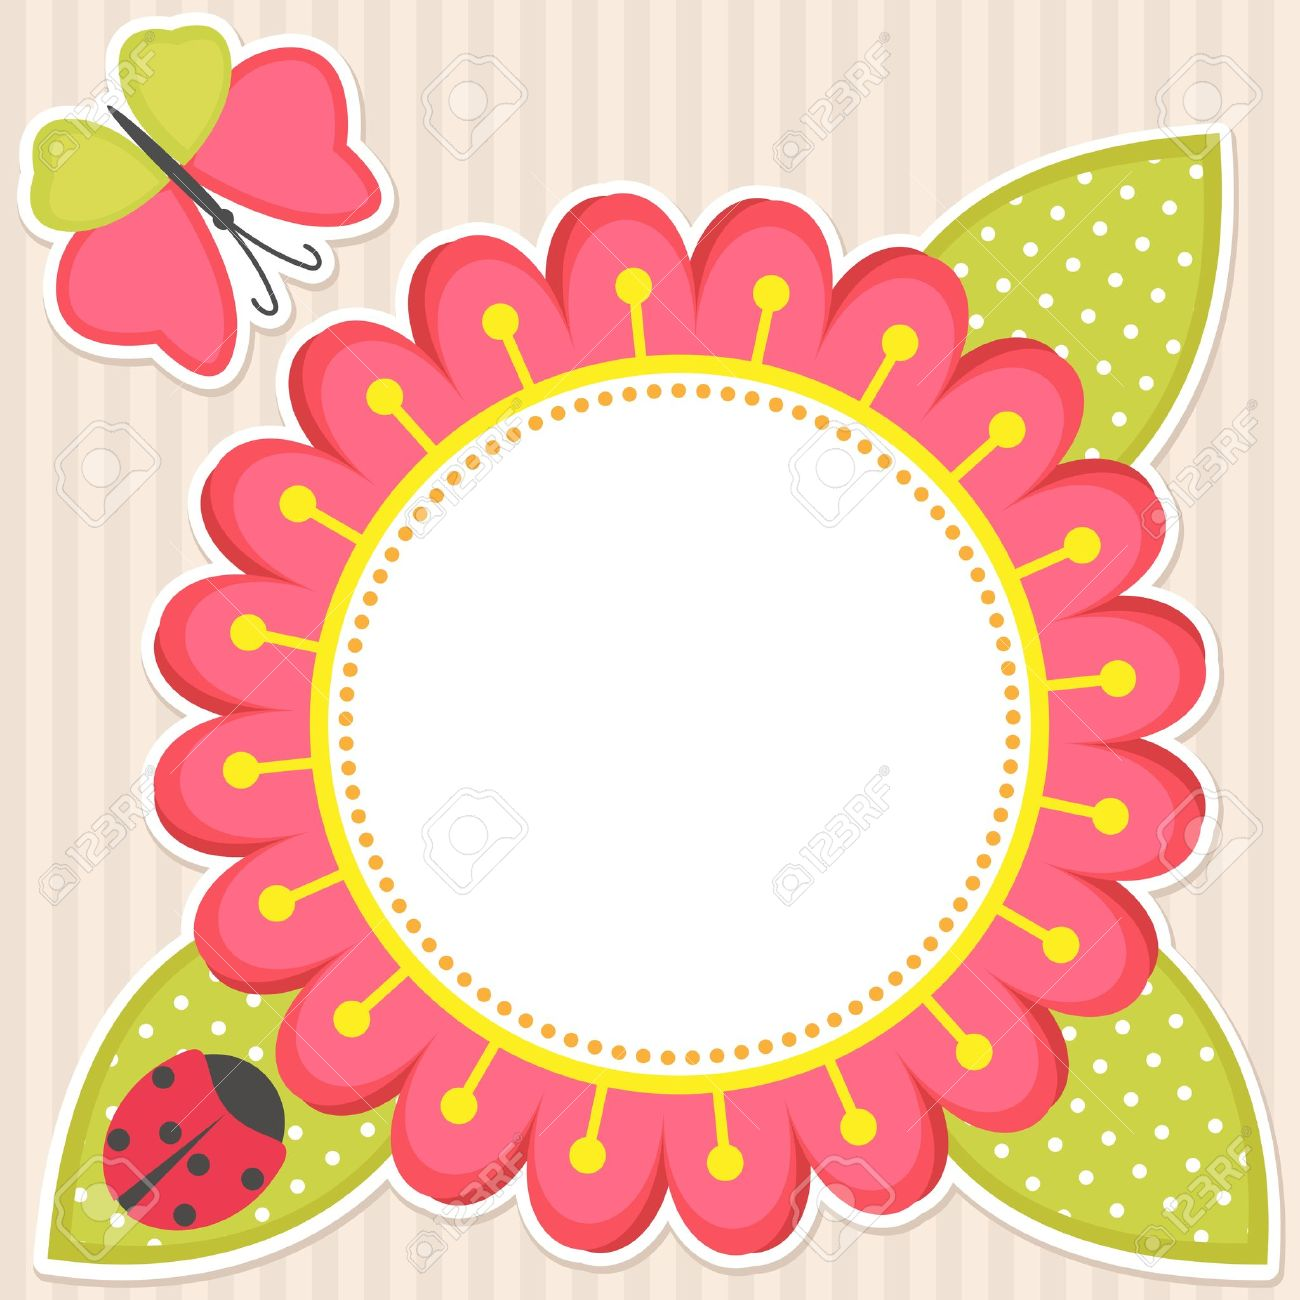 Vector floral frame with butterfly and ladybug royalty free cliparts vector floral frame with butterfly and ladybug stock vector 12393573 stopboris Images